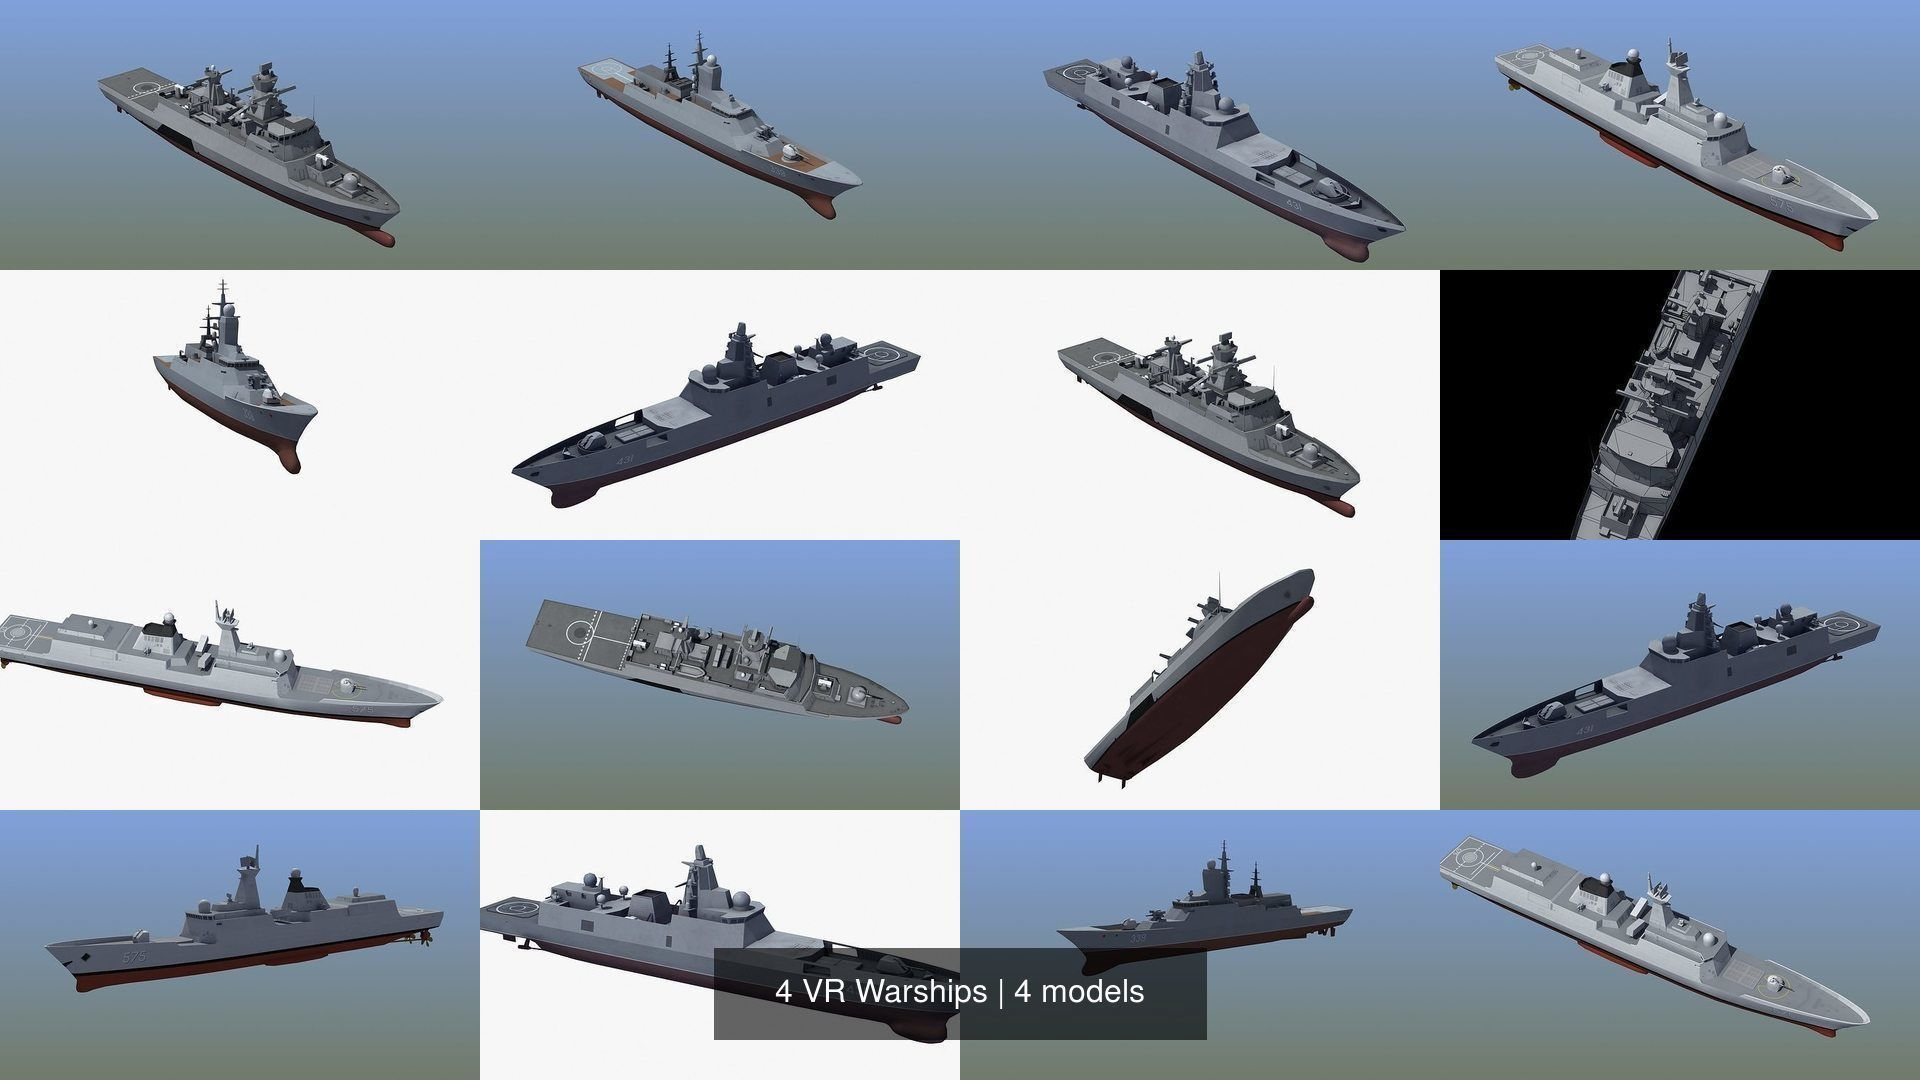 4 VR Warships